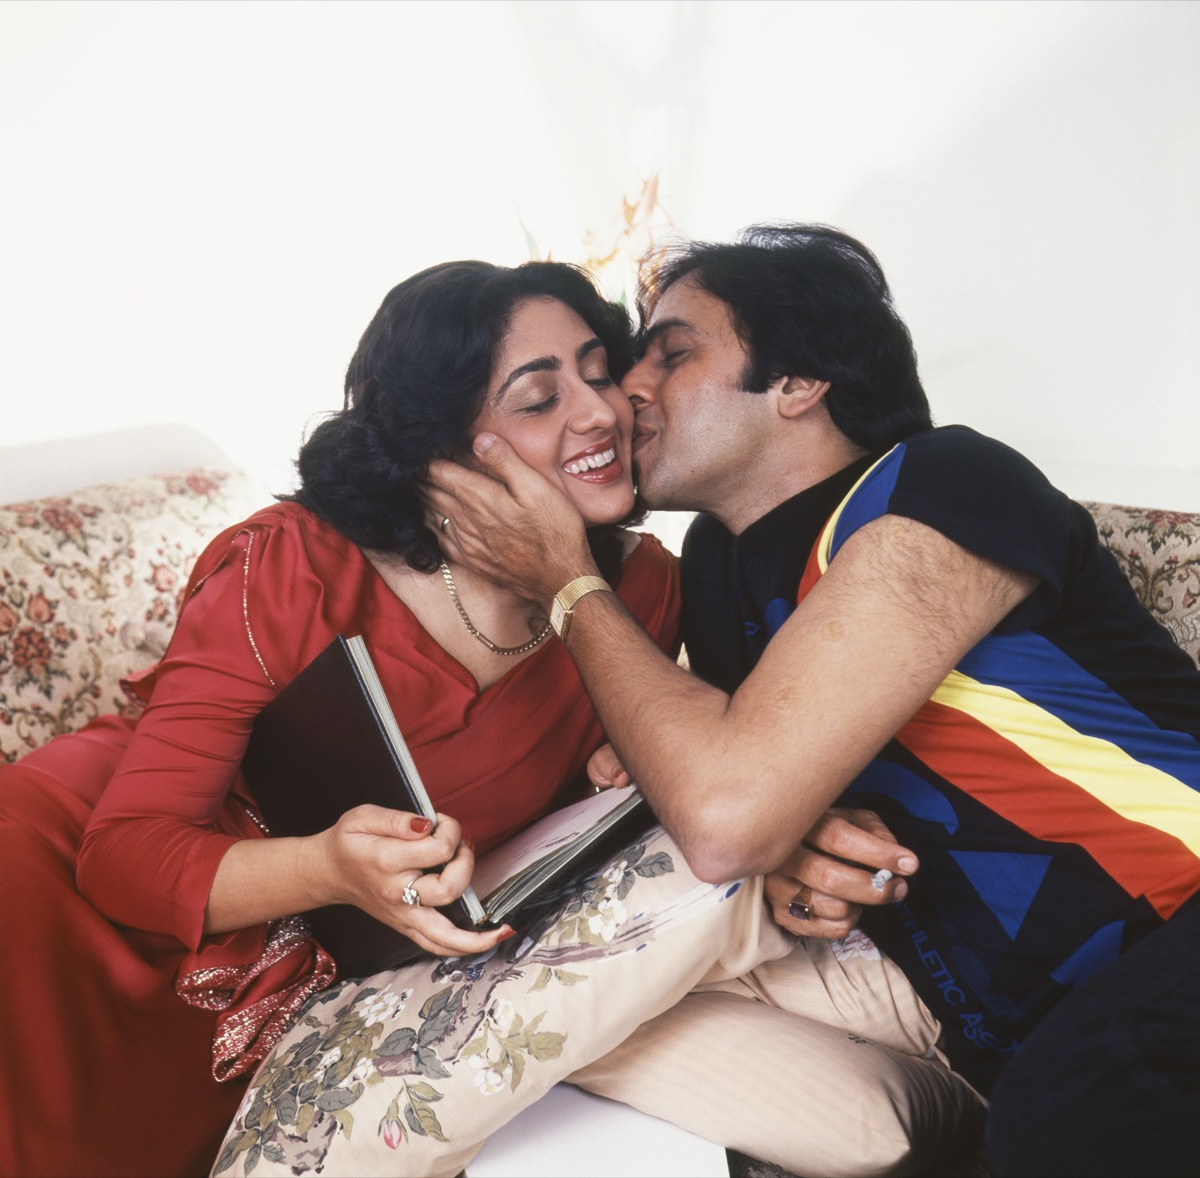 Indian Couple Kissing on the Cheek Cost of a Date